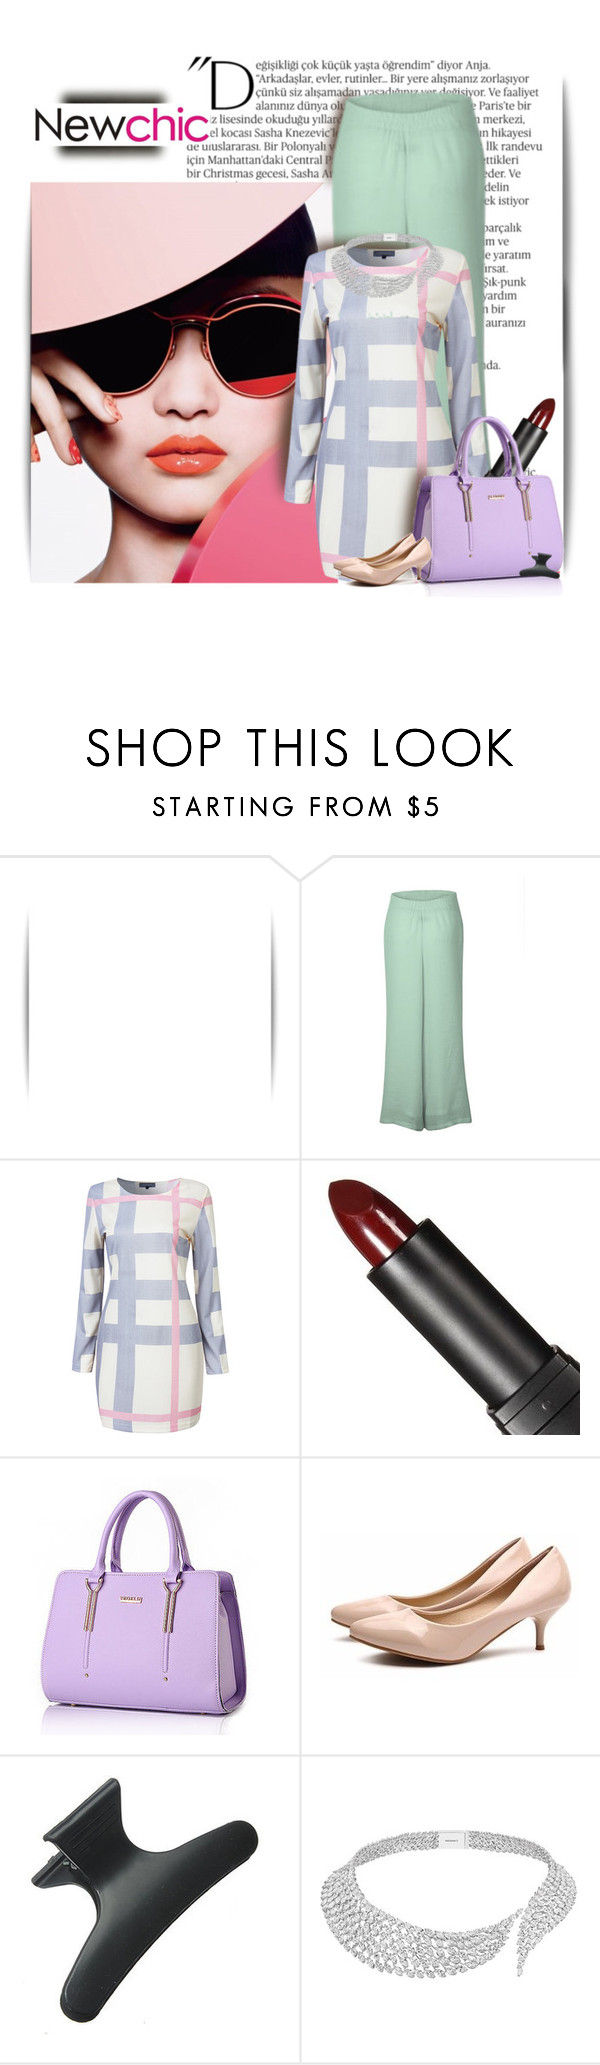 """""""#newchic contest"""" by lurve-music ❤ liked on Polyvore featuring Balmain, Messika, chic, New and newchic"""